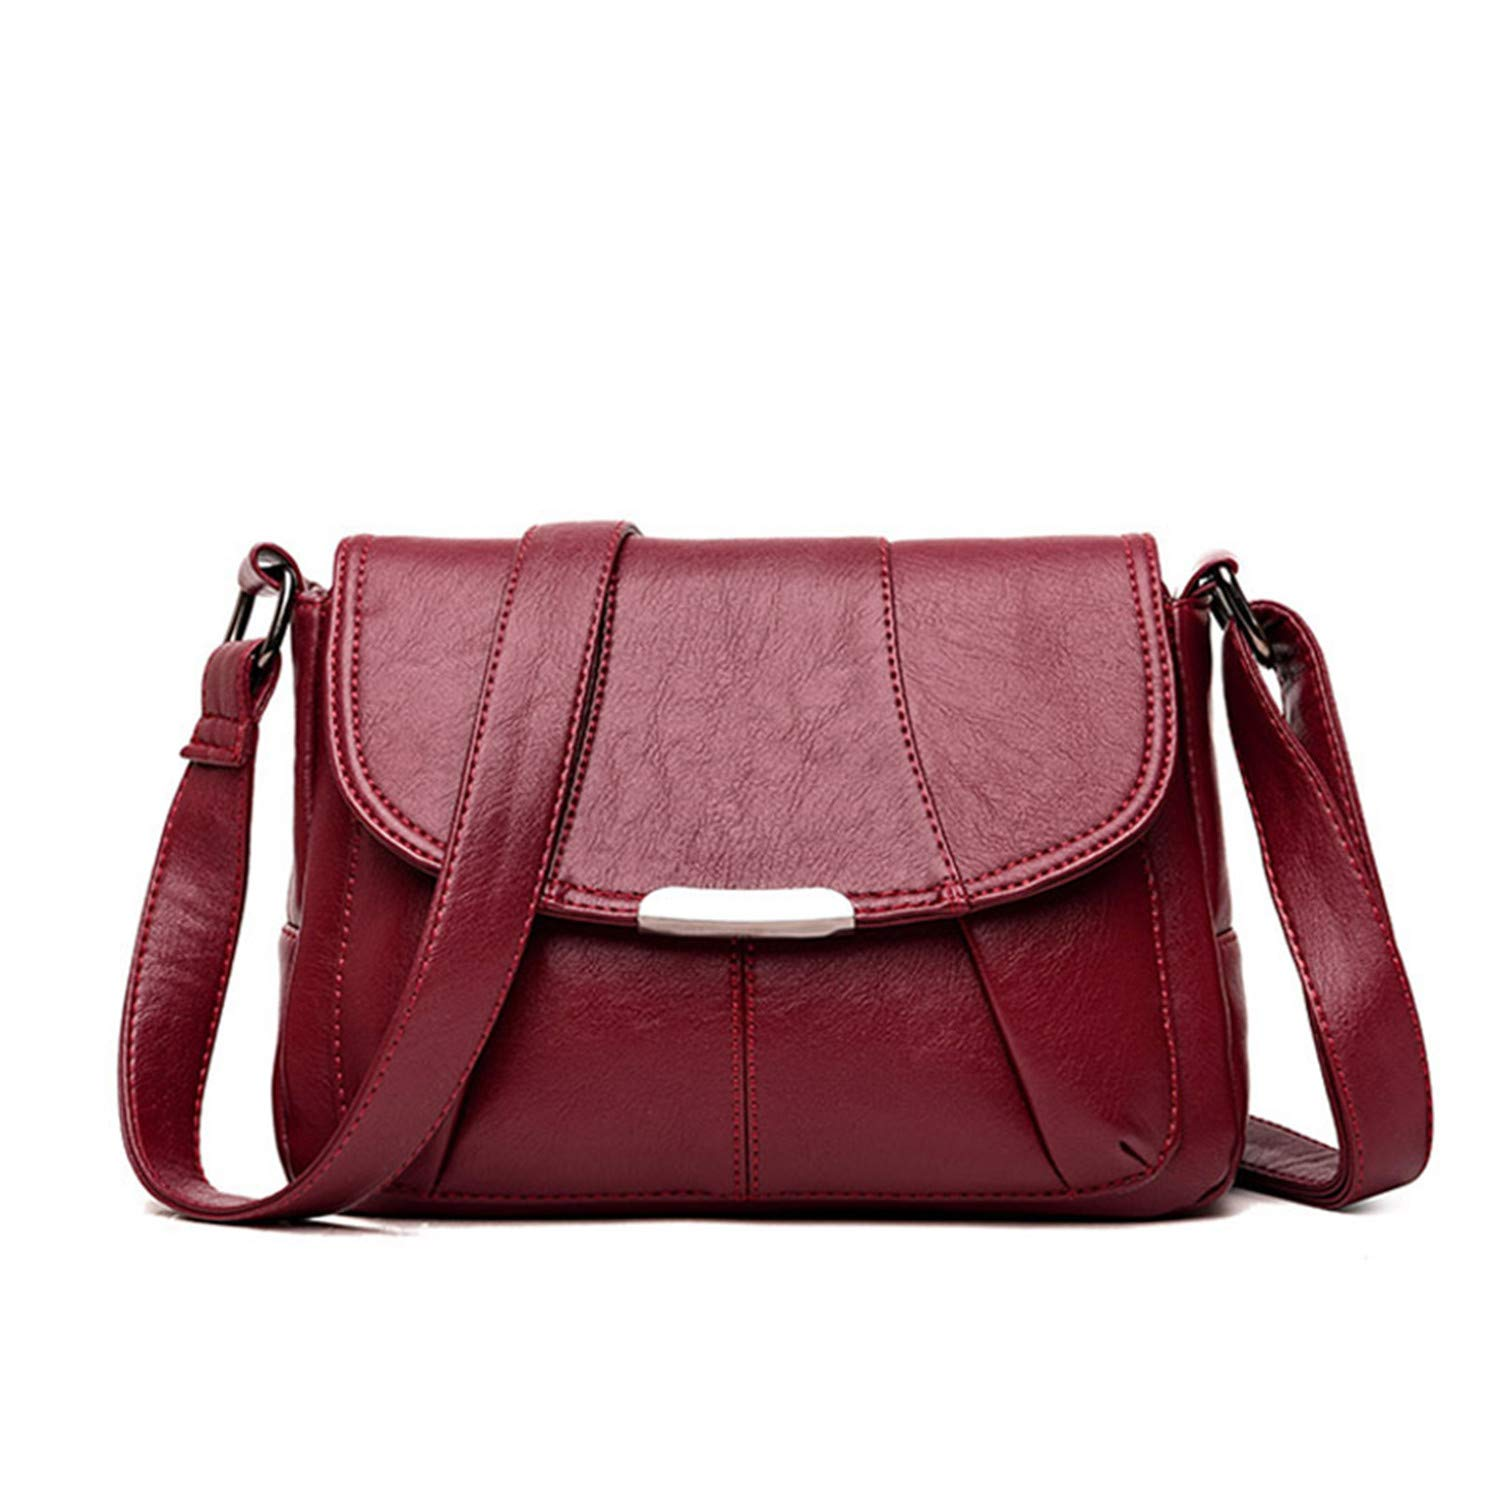 31b331332cee Amazon.com  Women Messenger Bags Small Leather Shoulder Bag Female Vintage  Flap Ladies Bag Crossbody Bags for Women  Computers   Accessories